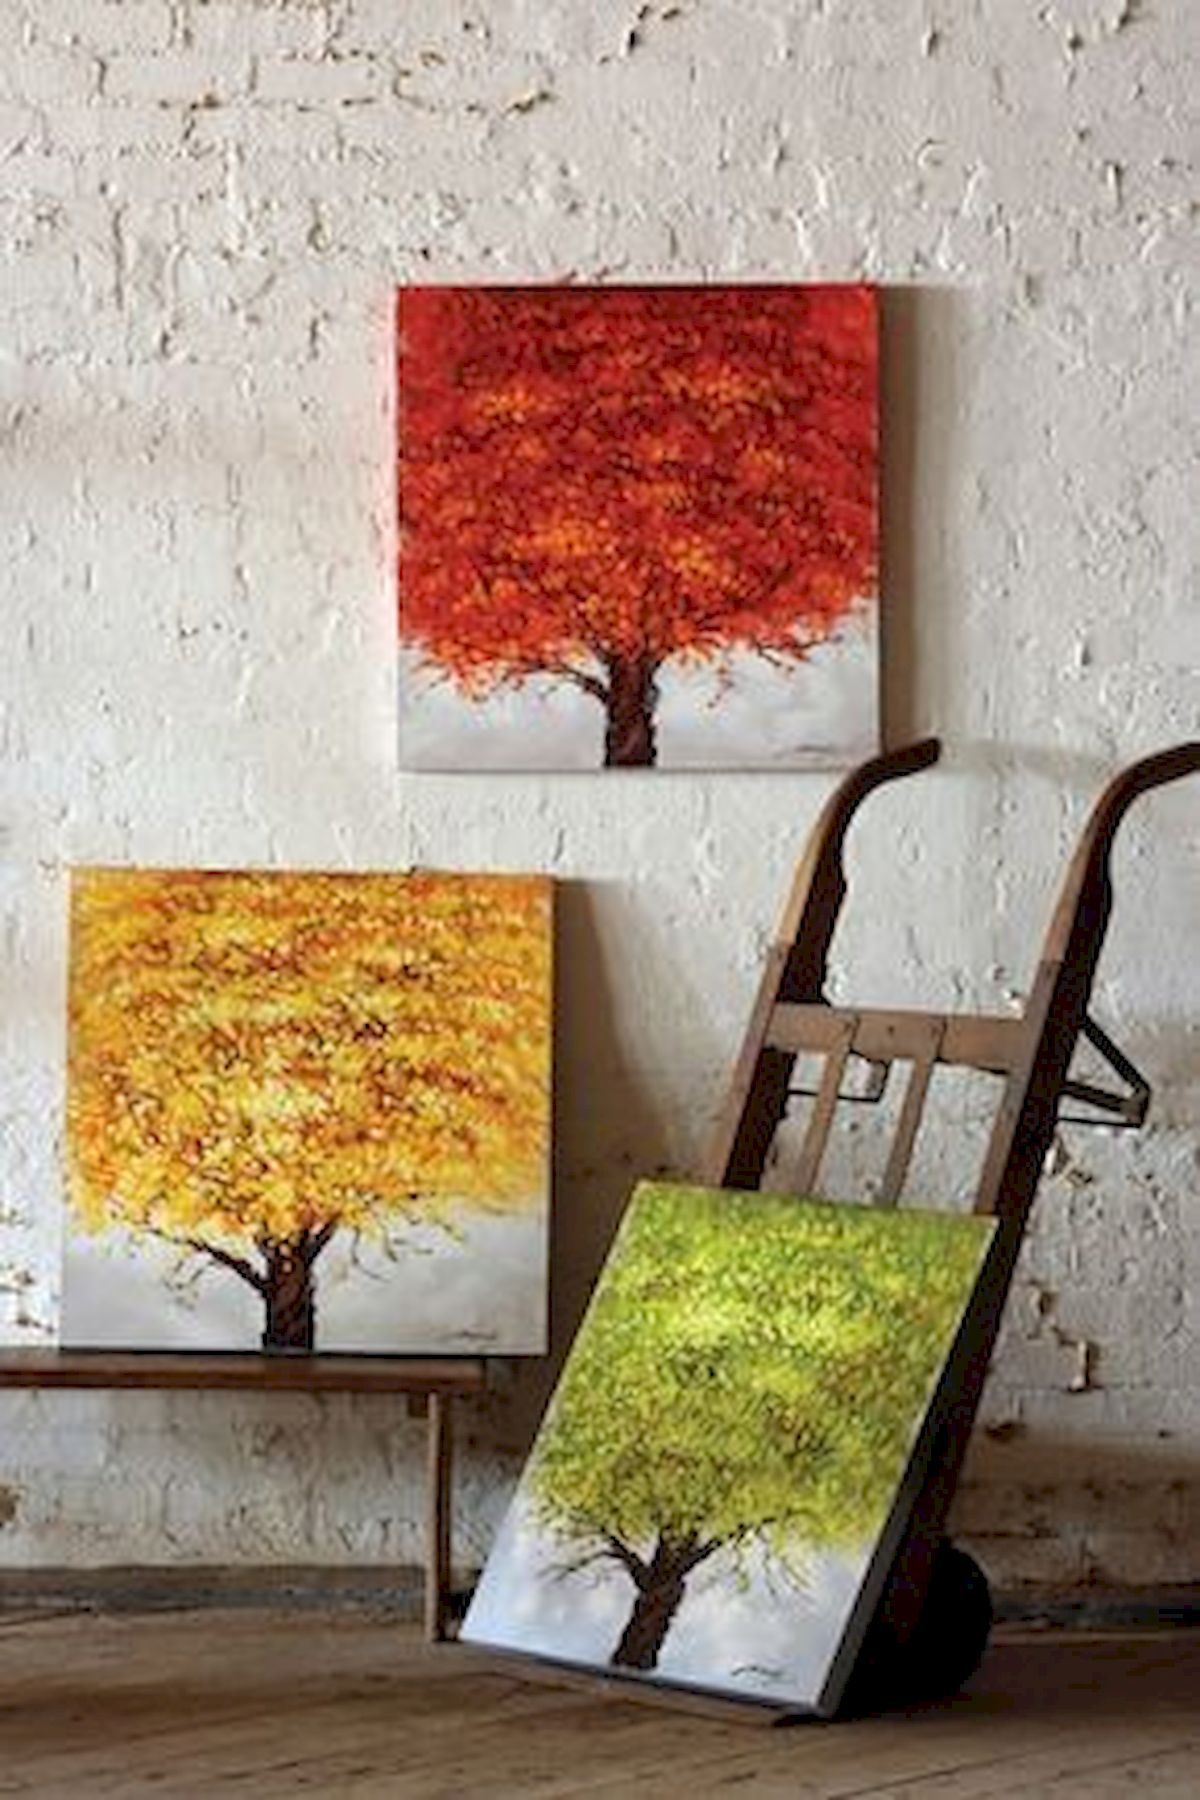 Gorgeous 86 Stunning Art Canvas Painting Ideas For Your Home Source Https Artmyideas Com 86 Stunning Art Canvas Painting Diy Tree Painting Canvas Painting